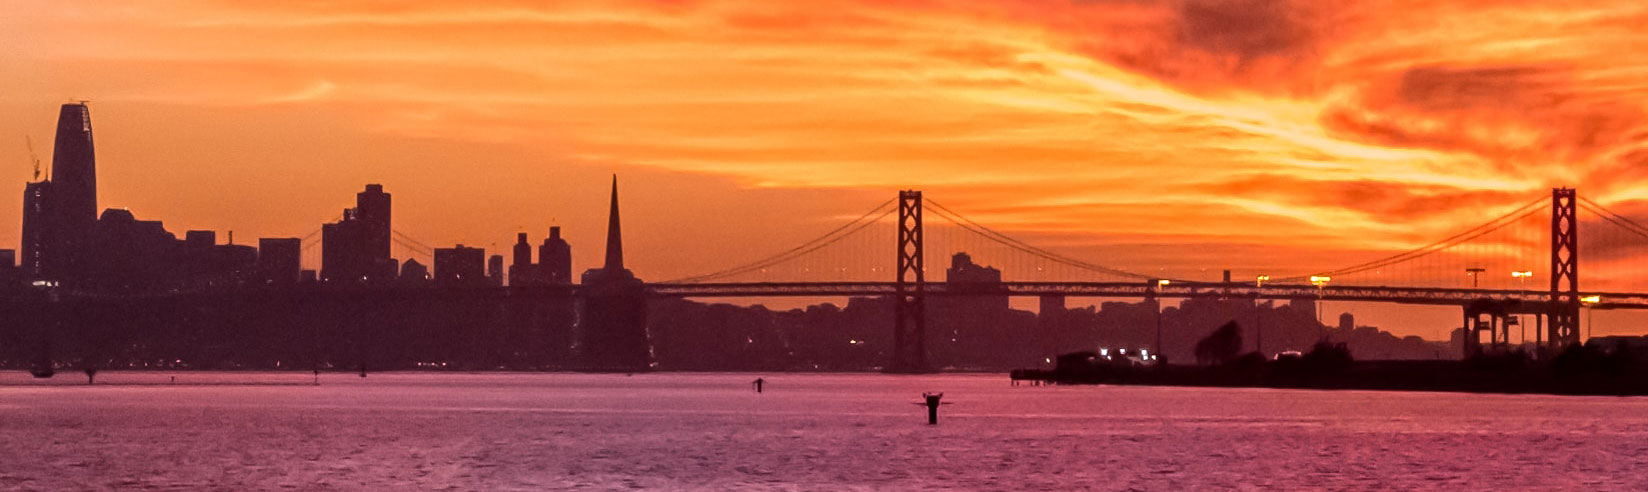 Private jet to Oakland with orange sunset over bay bridge